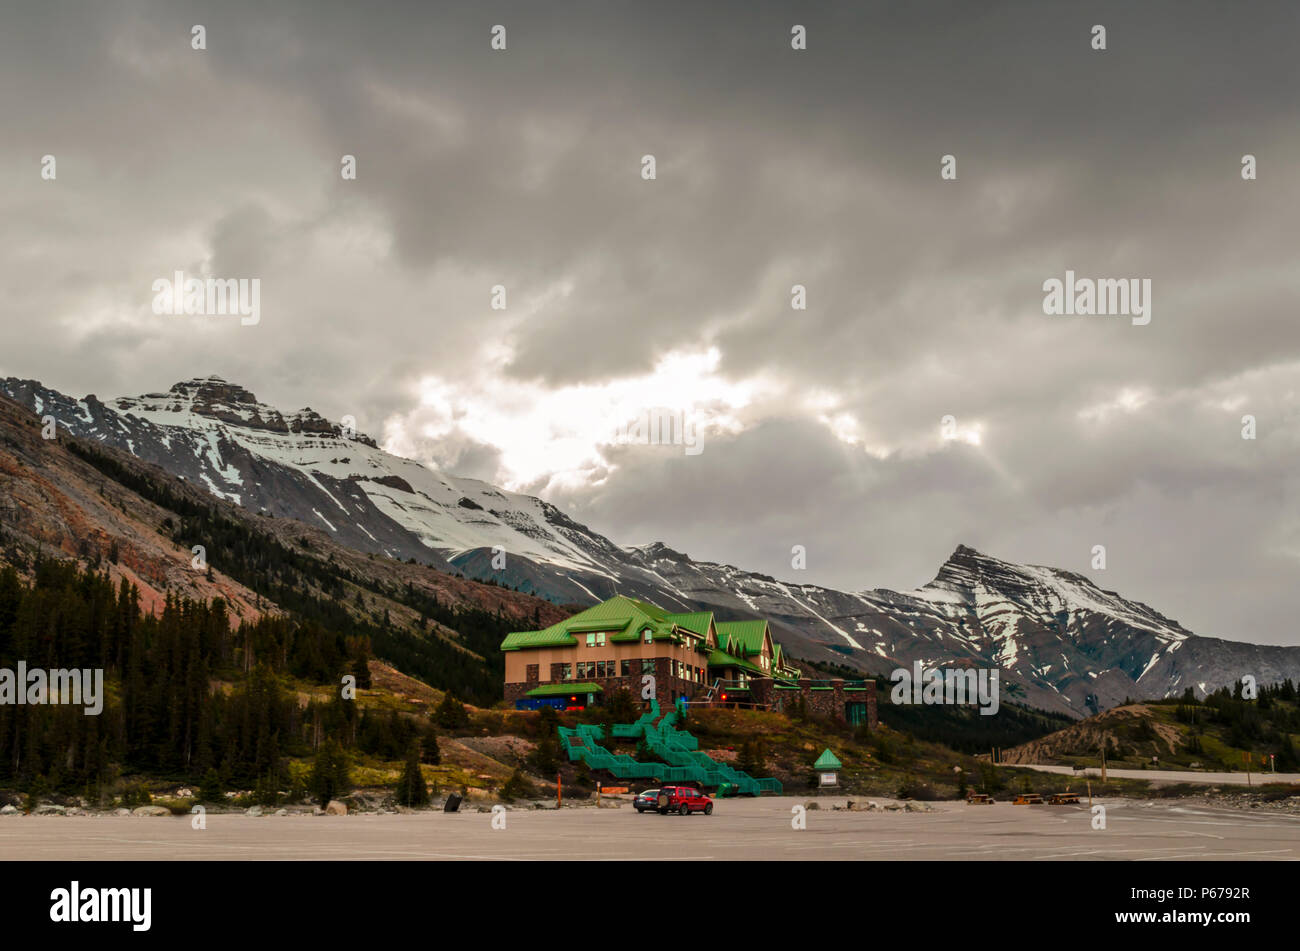 Parking for cars with two cars at the foot of the mountains and buildings with green staircases and a green roof, coniferous trees and snow - Stock Image